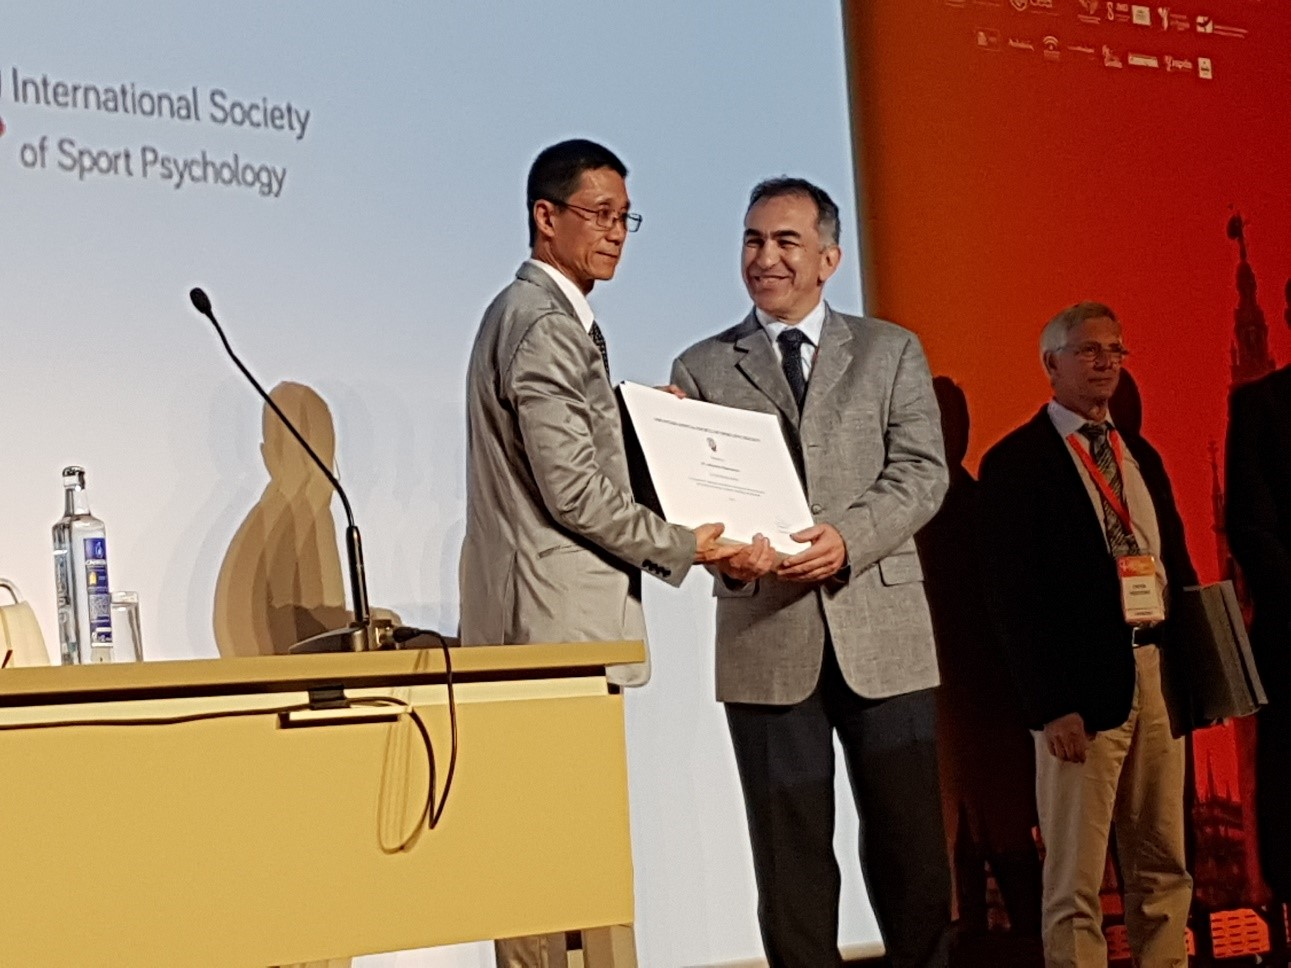 Professor A. Papaioannou received the Honor Award of the International Society of Sport Psychology (ISSP)!